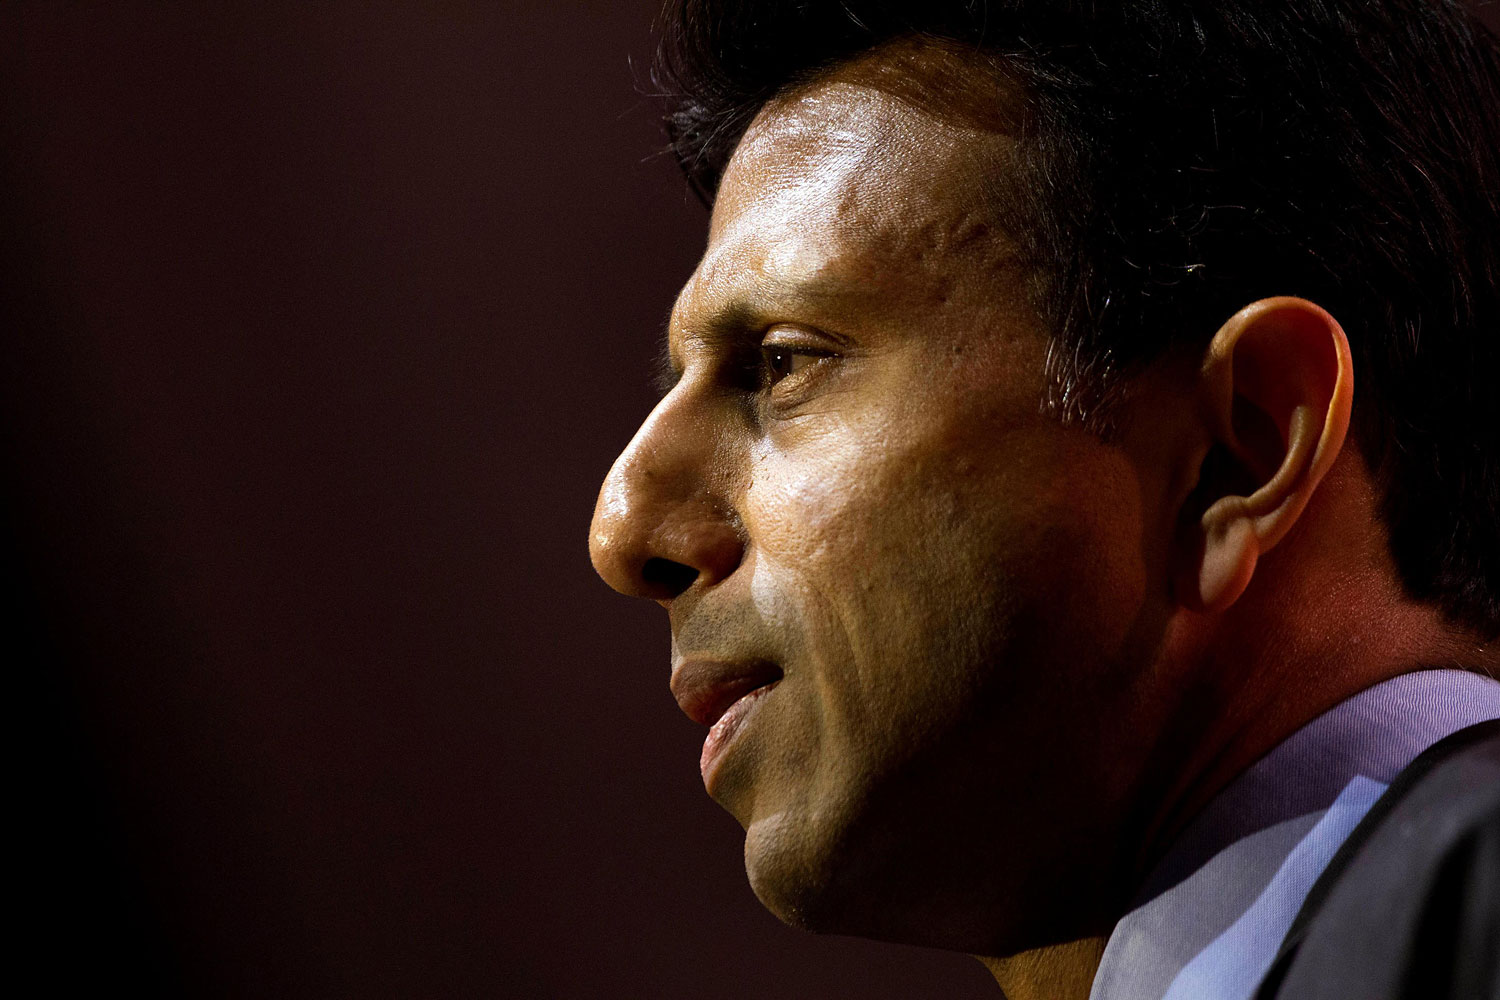 Governor Bobby Jindal of Louisiana speaks during an address to delegates at the Conservative Political Action Conference, National Harbor, Maryland, March 6, 2014.